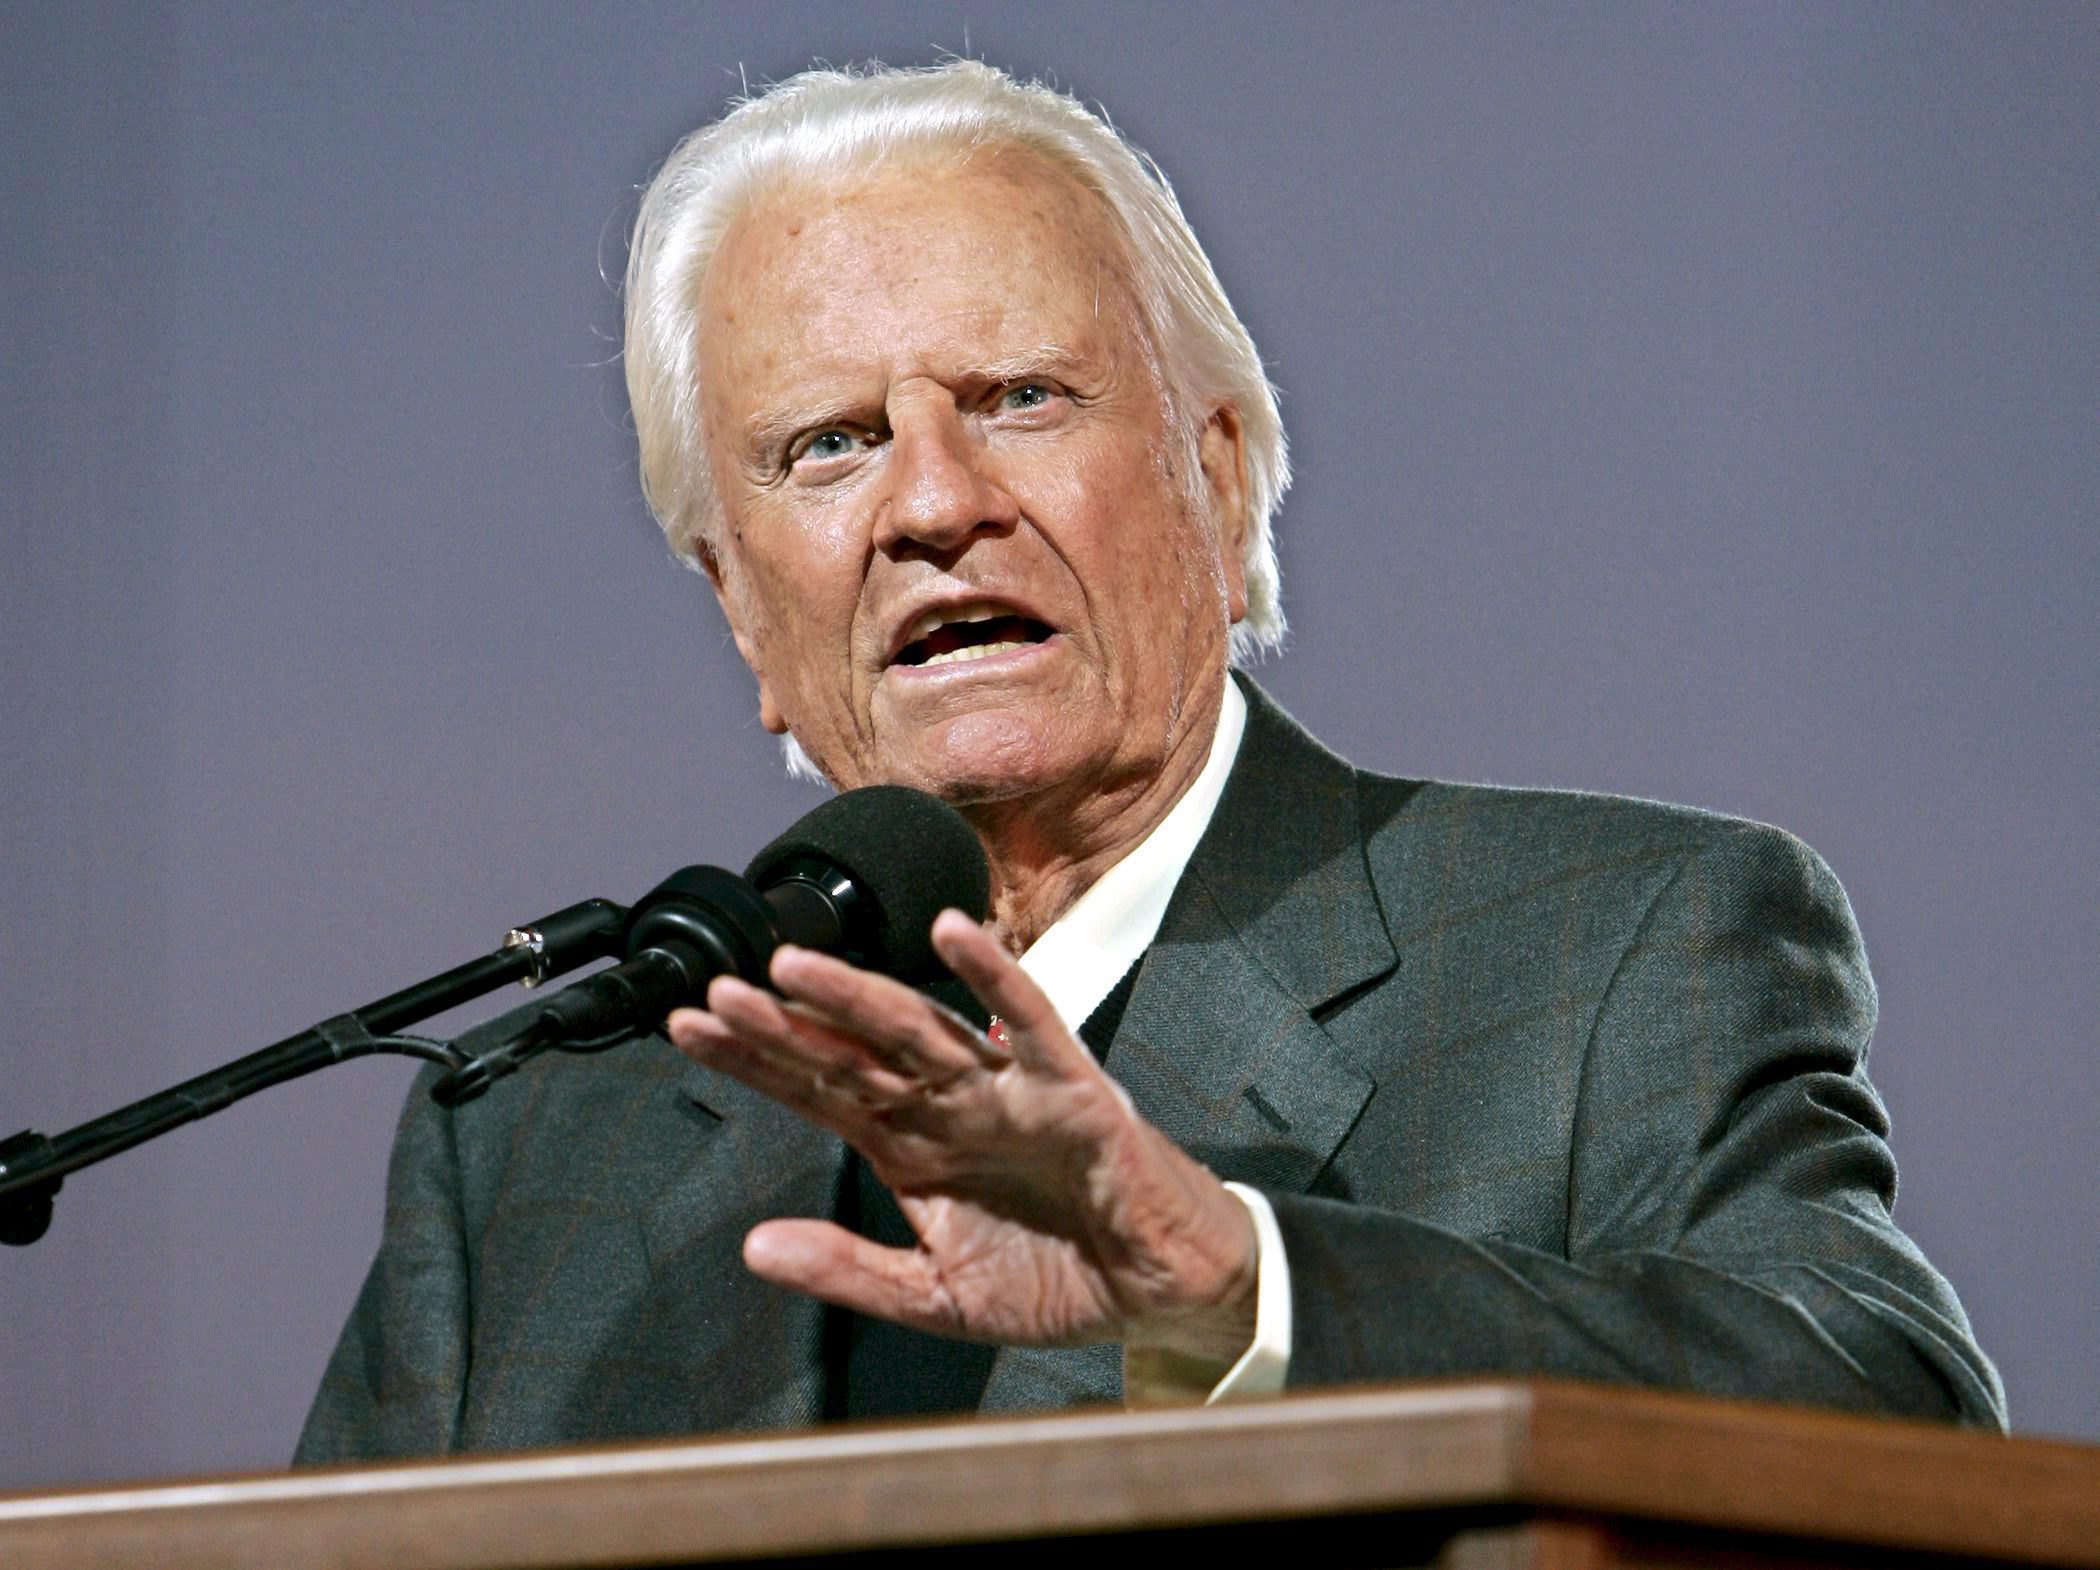 American evangelical Christian pastor Billy Graham speaks at the first night of the Greater New York Billy Graham Crusade, at Flushing Meadows Corona Park in Queens, New York, USA, on June 24, 2005. Media reports state that Billy Graham died aged 99 on Feb. 21, 2018, at his home Montreat, North Carolina. EFE